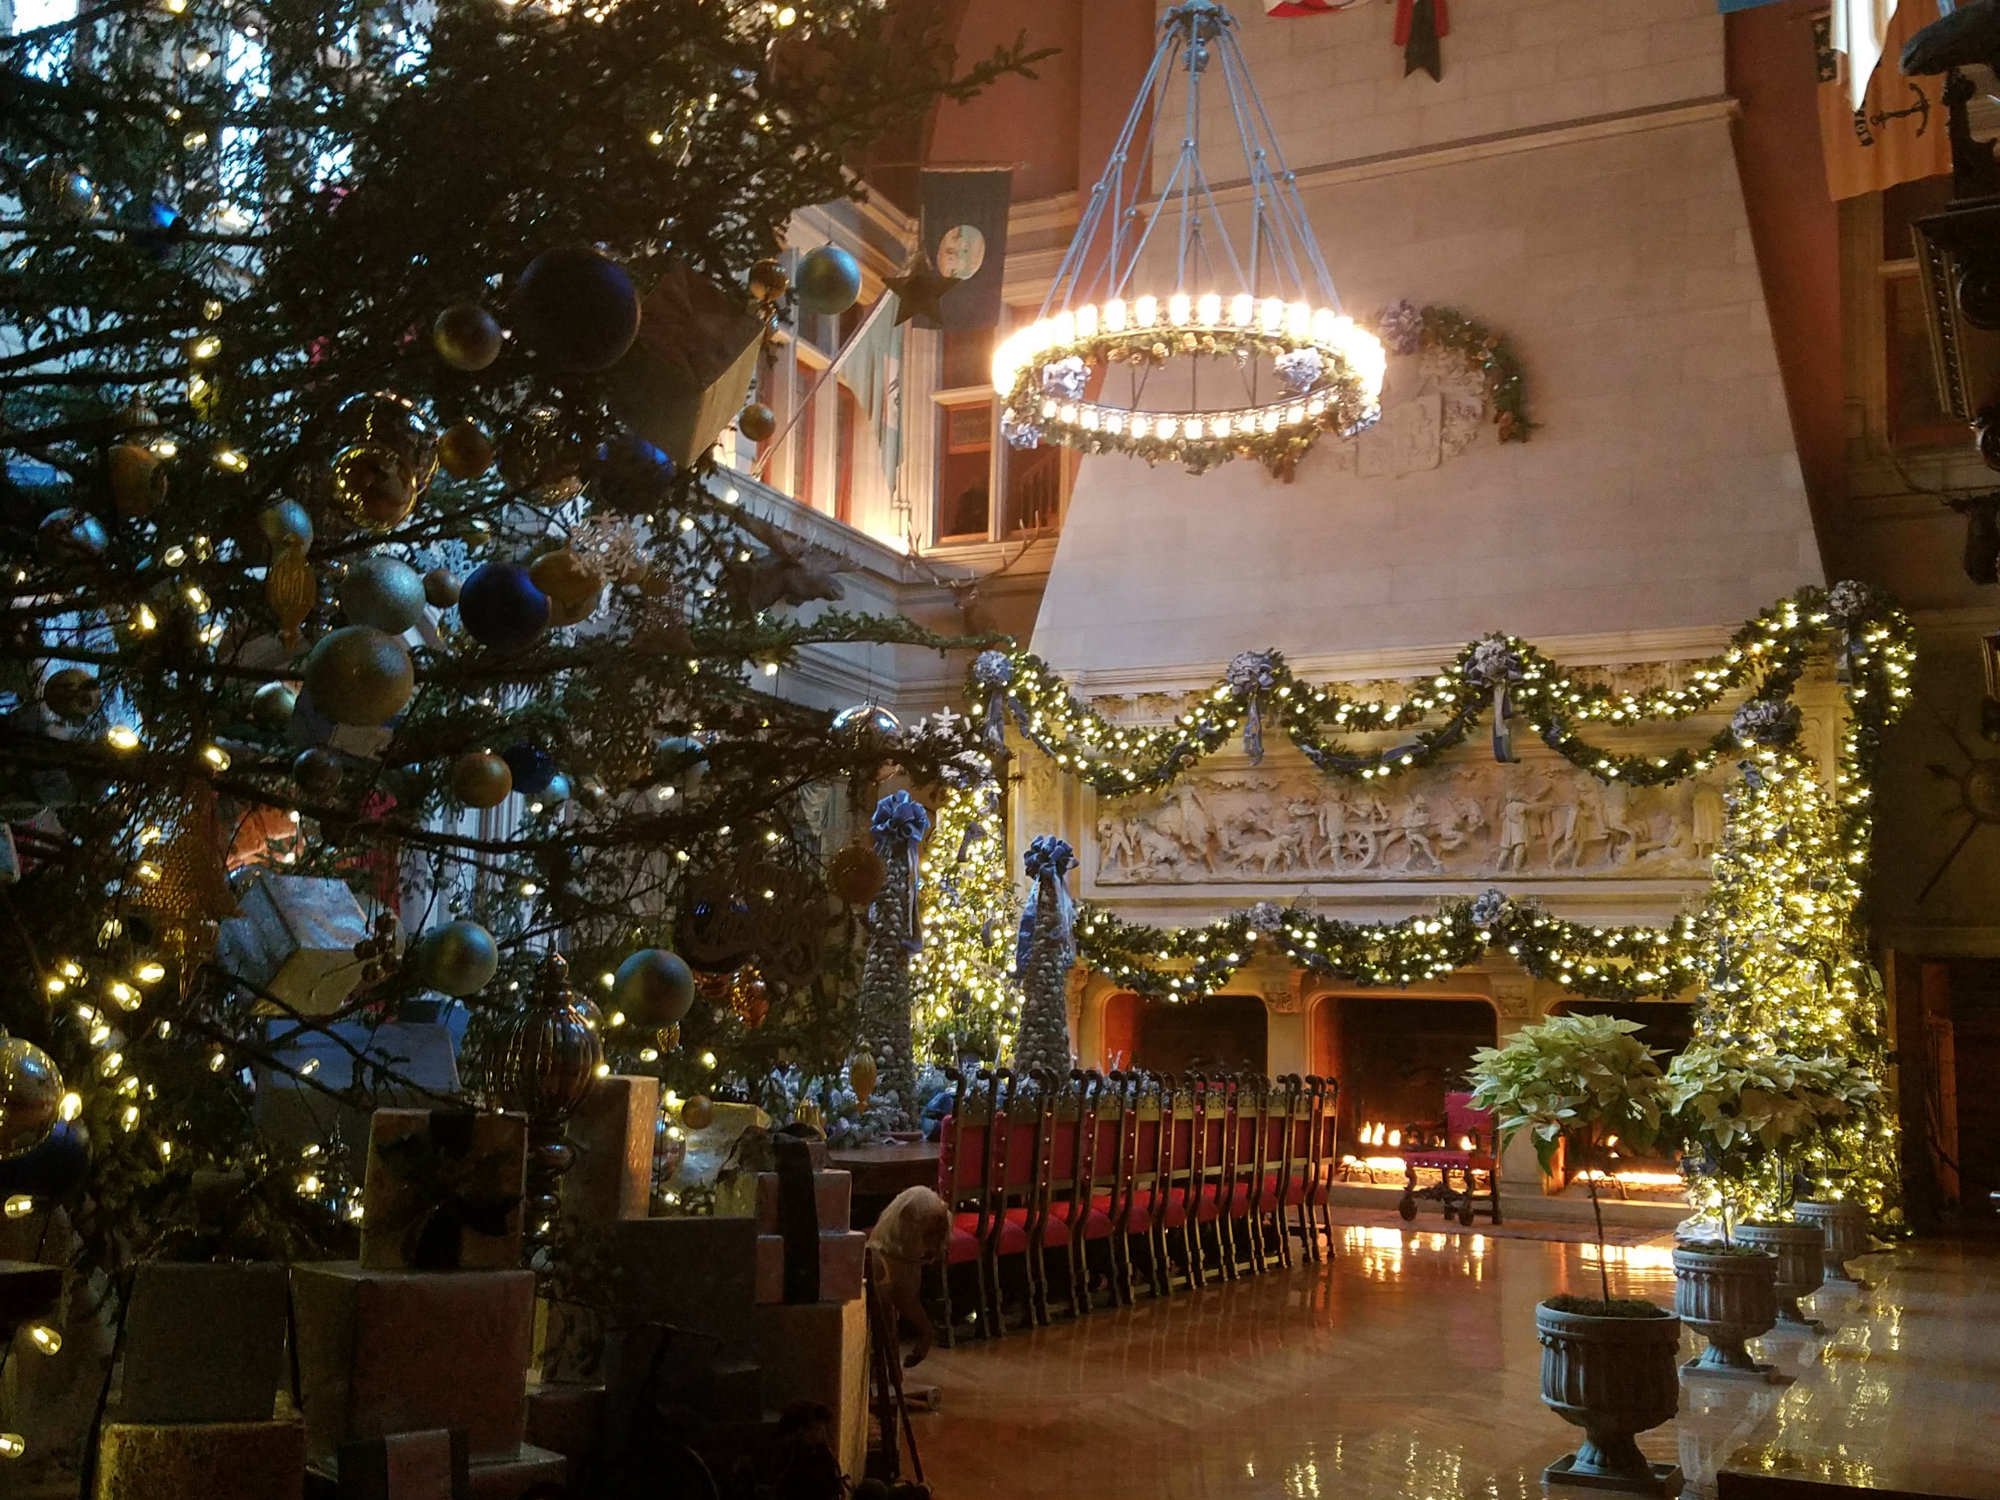 Christmas decorations in a dining hall several stories tall with three connected stone fireplaces on one wall